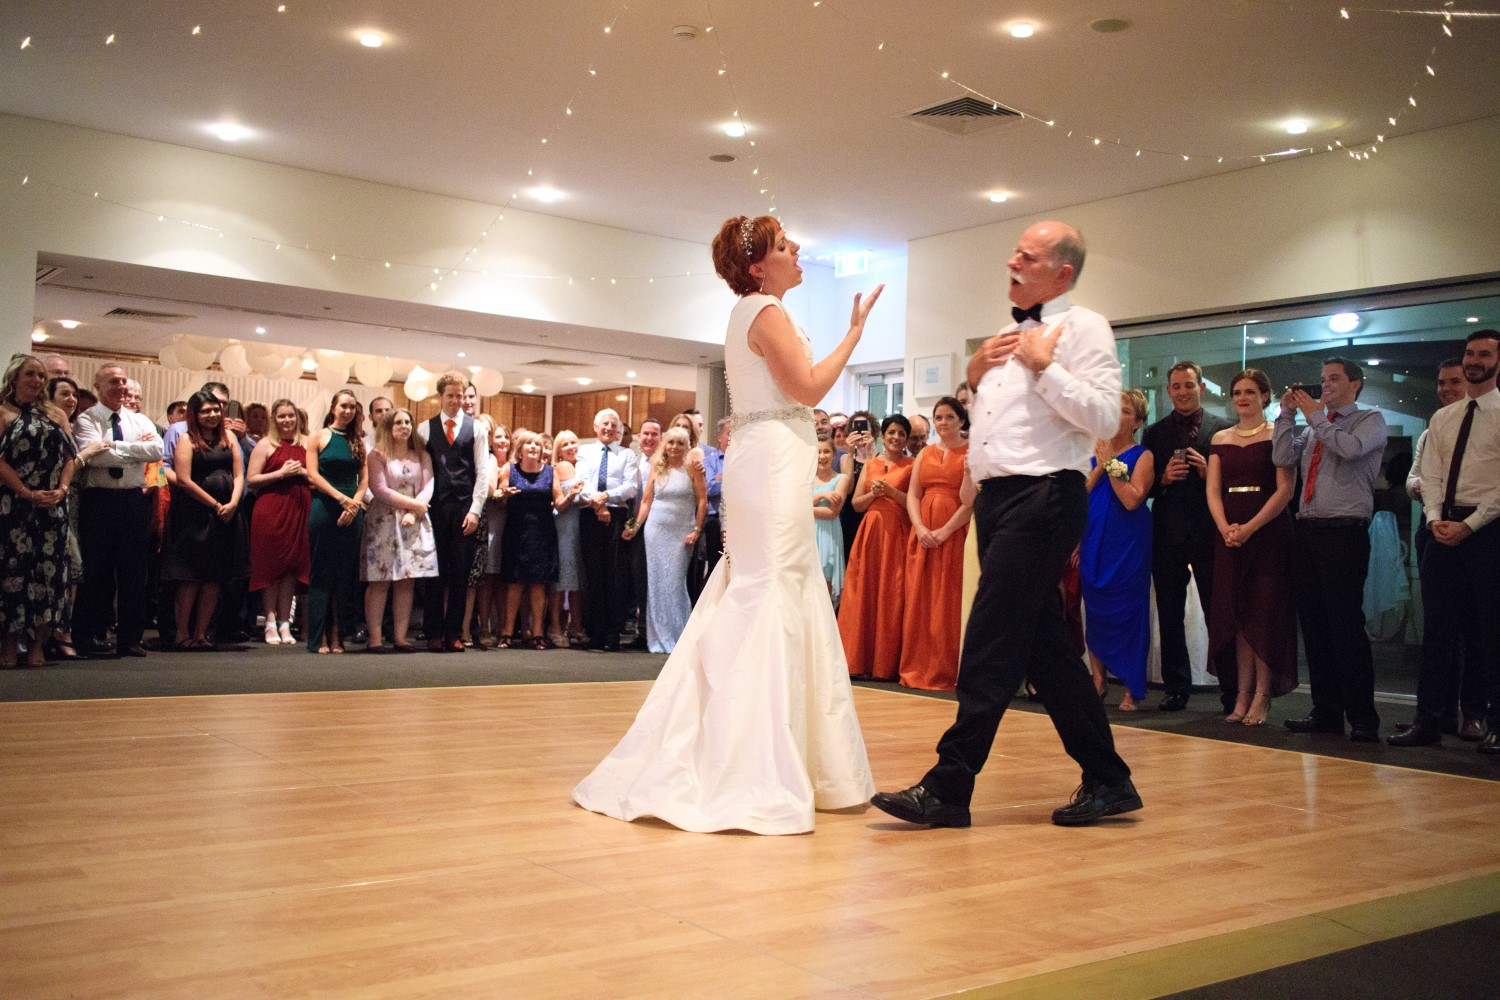 095-perth-wedding-reception-mount-lawley-golf